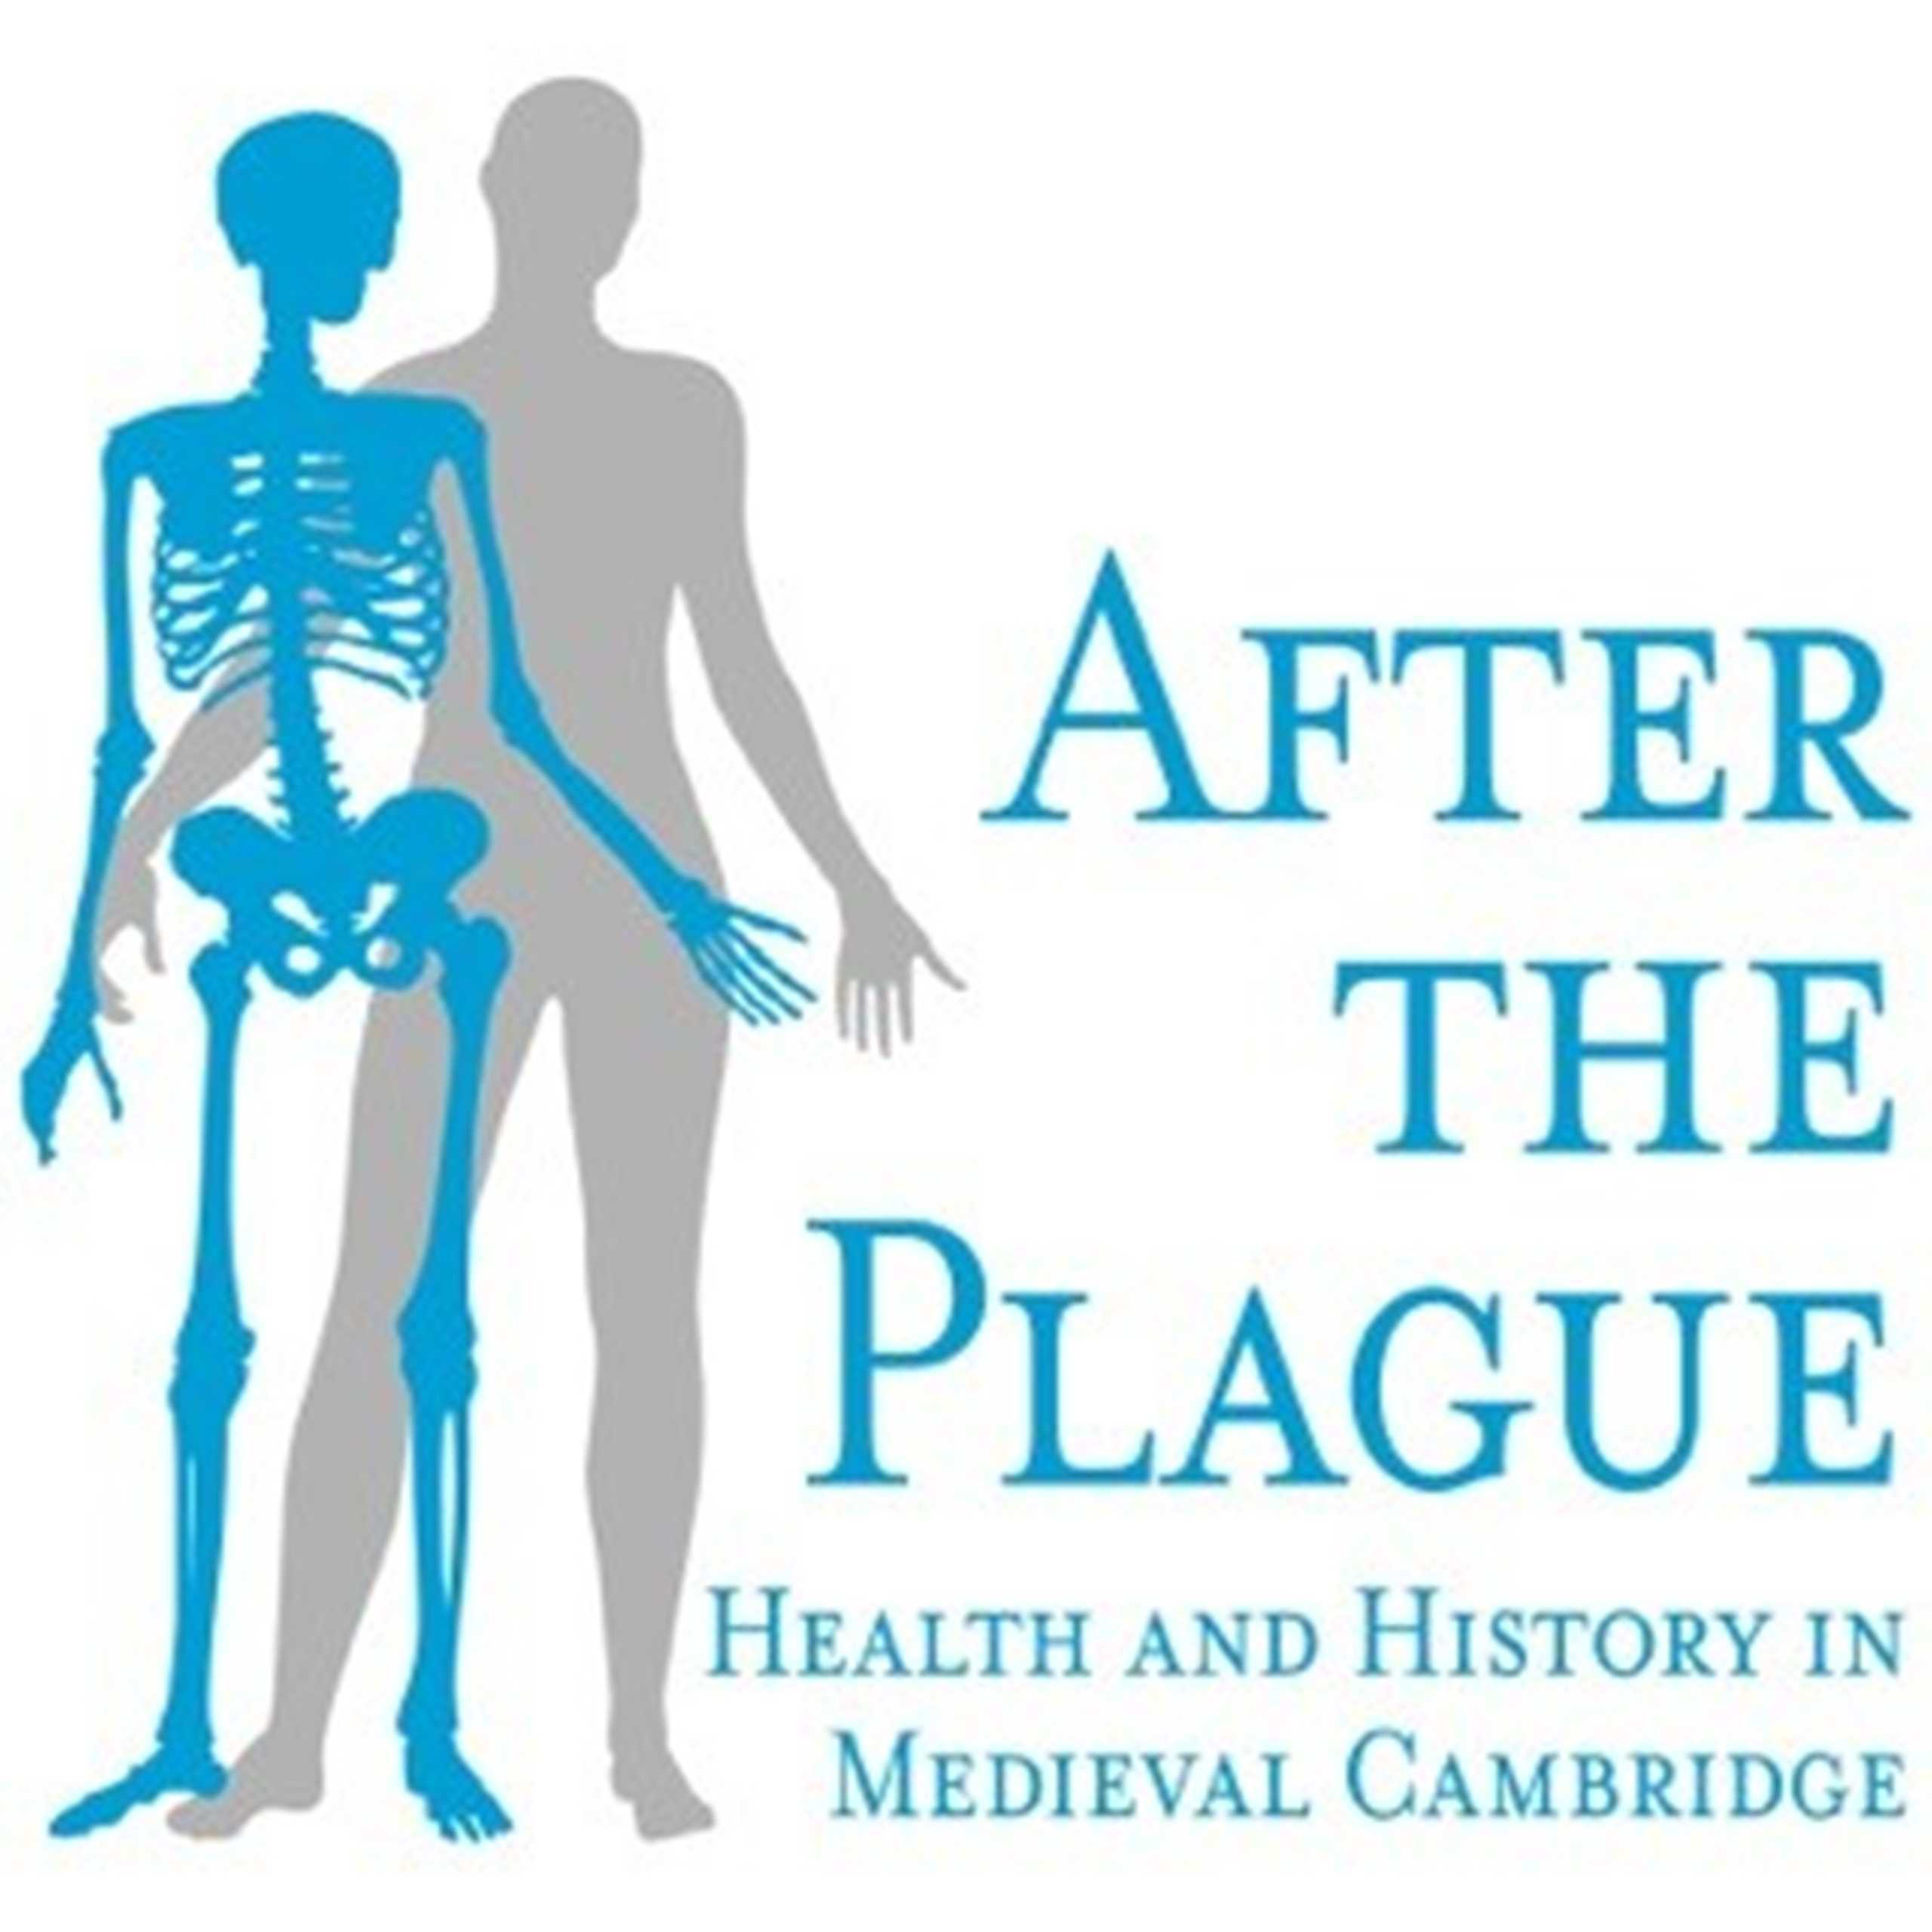 After the Plague